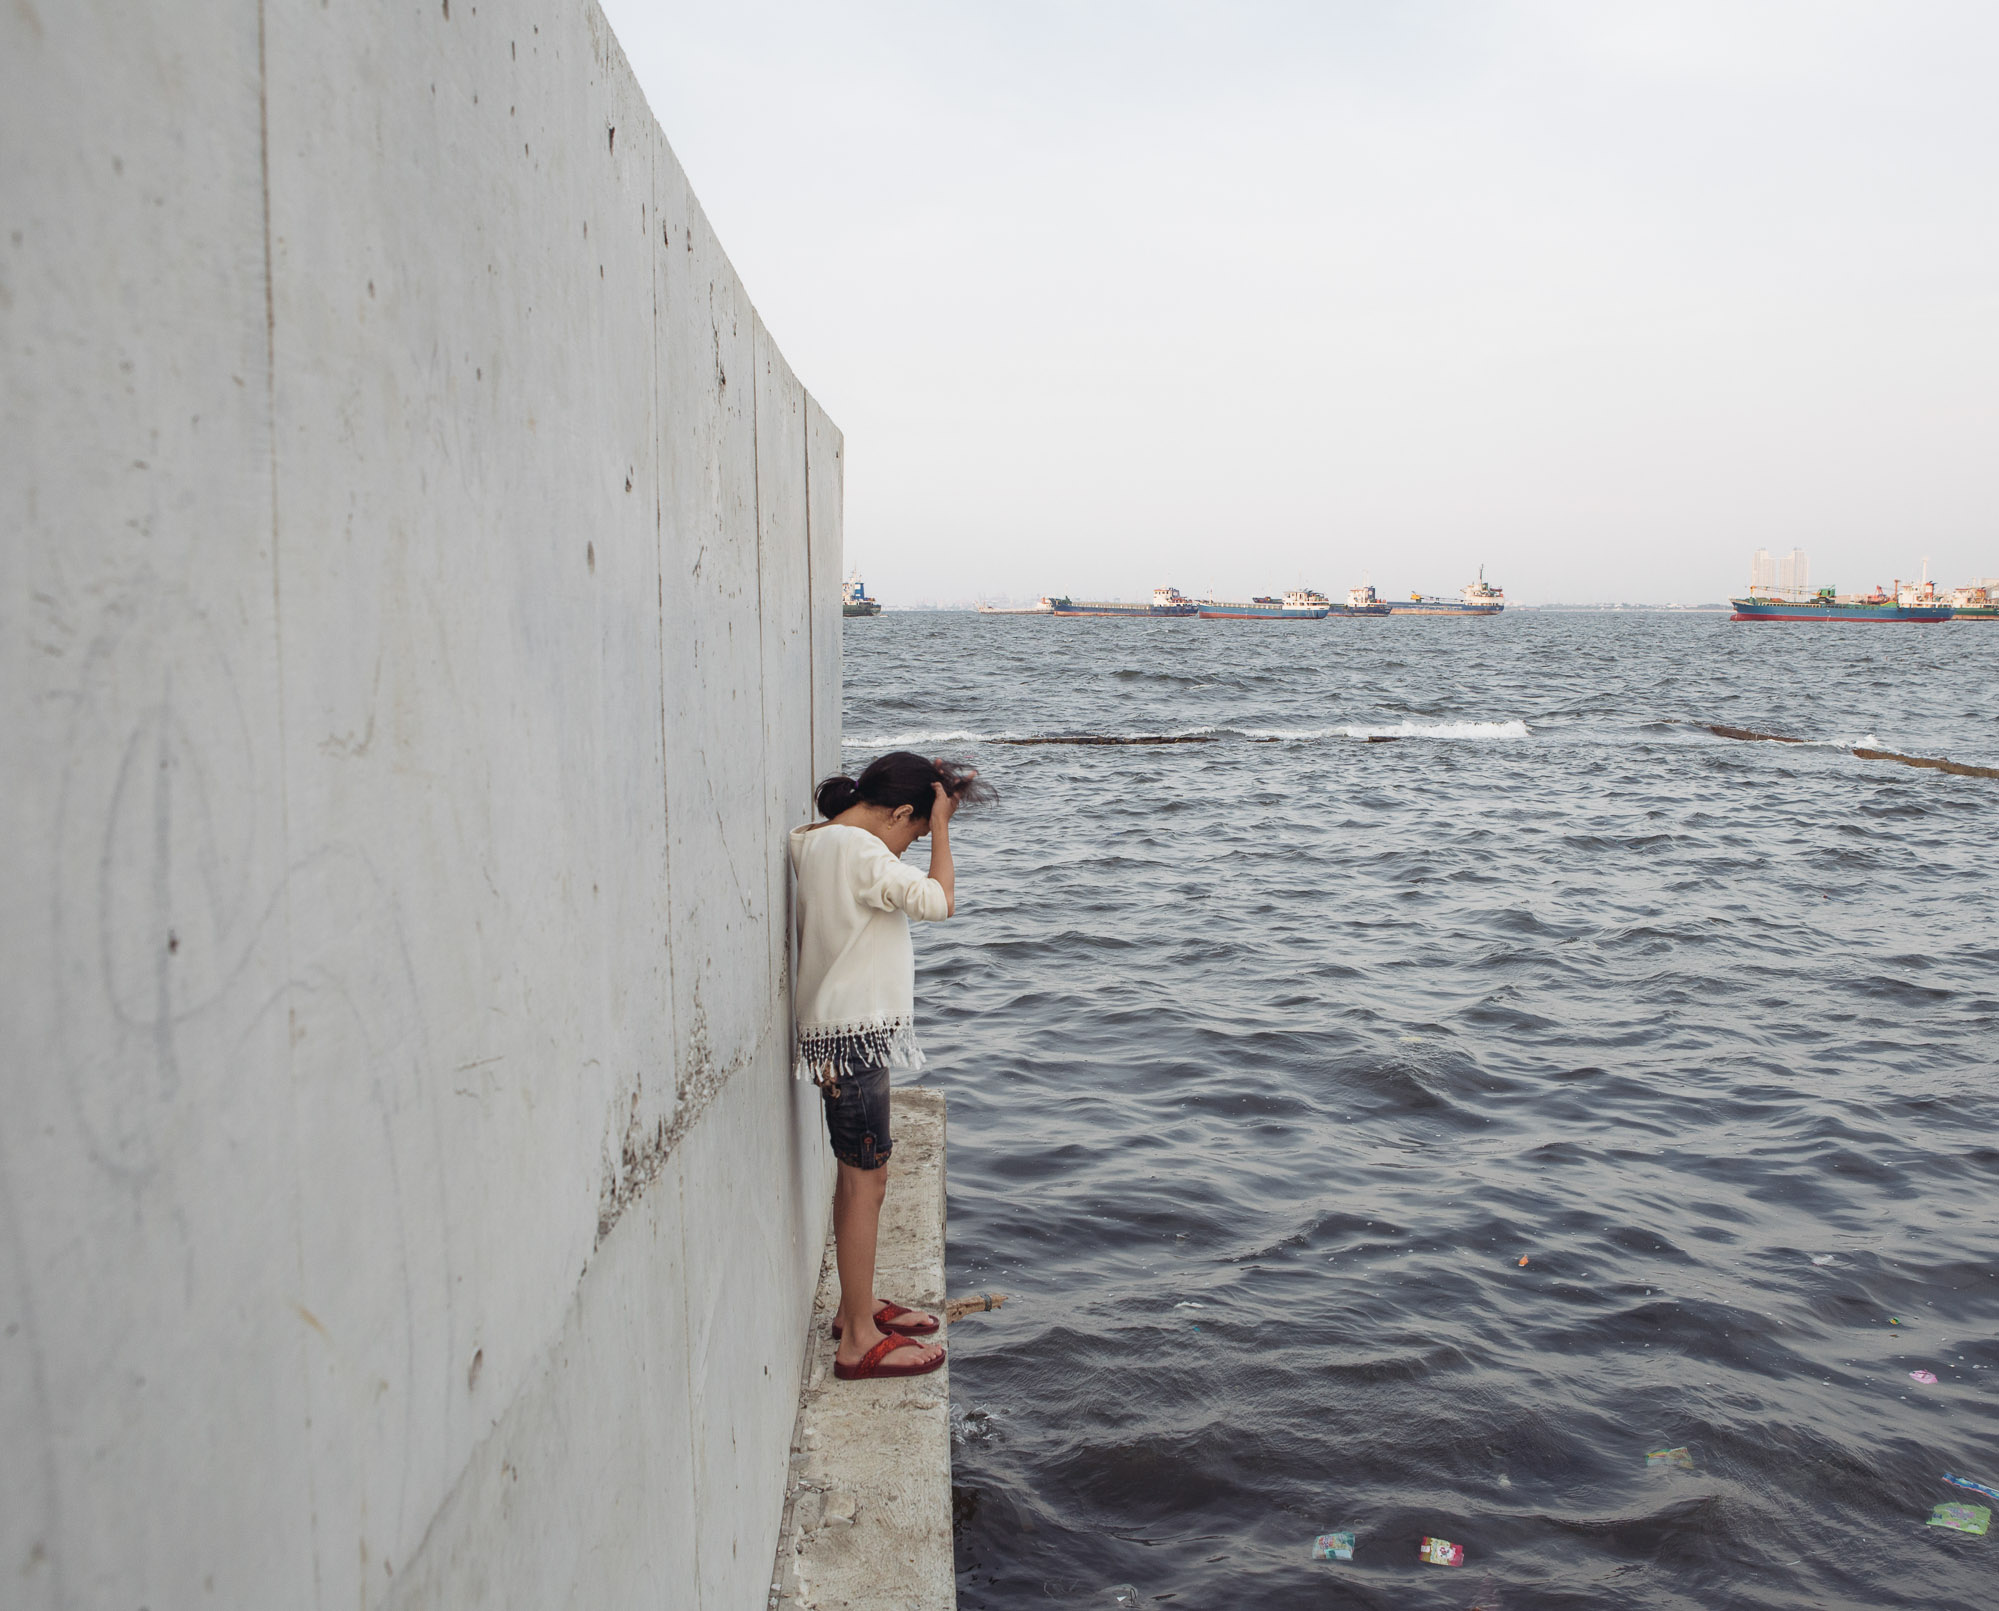 A girl stands at the outer side of the recently-reinforced seawall in Muara Baru, Penjaringan, North Jakarta. The city is sinking as a result of massive groundwater extraction, and Muara Baru, one of the worst sinking part of Jakarta, is already located below the sea level. (Photo by Muhammad Fadli/GroundTruth)